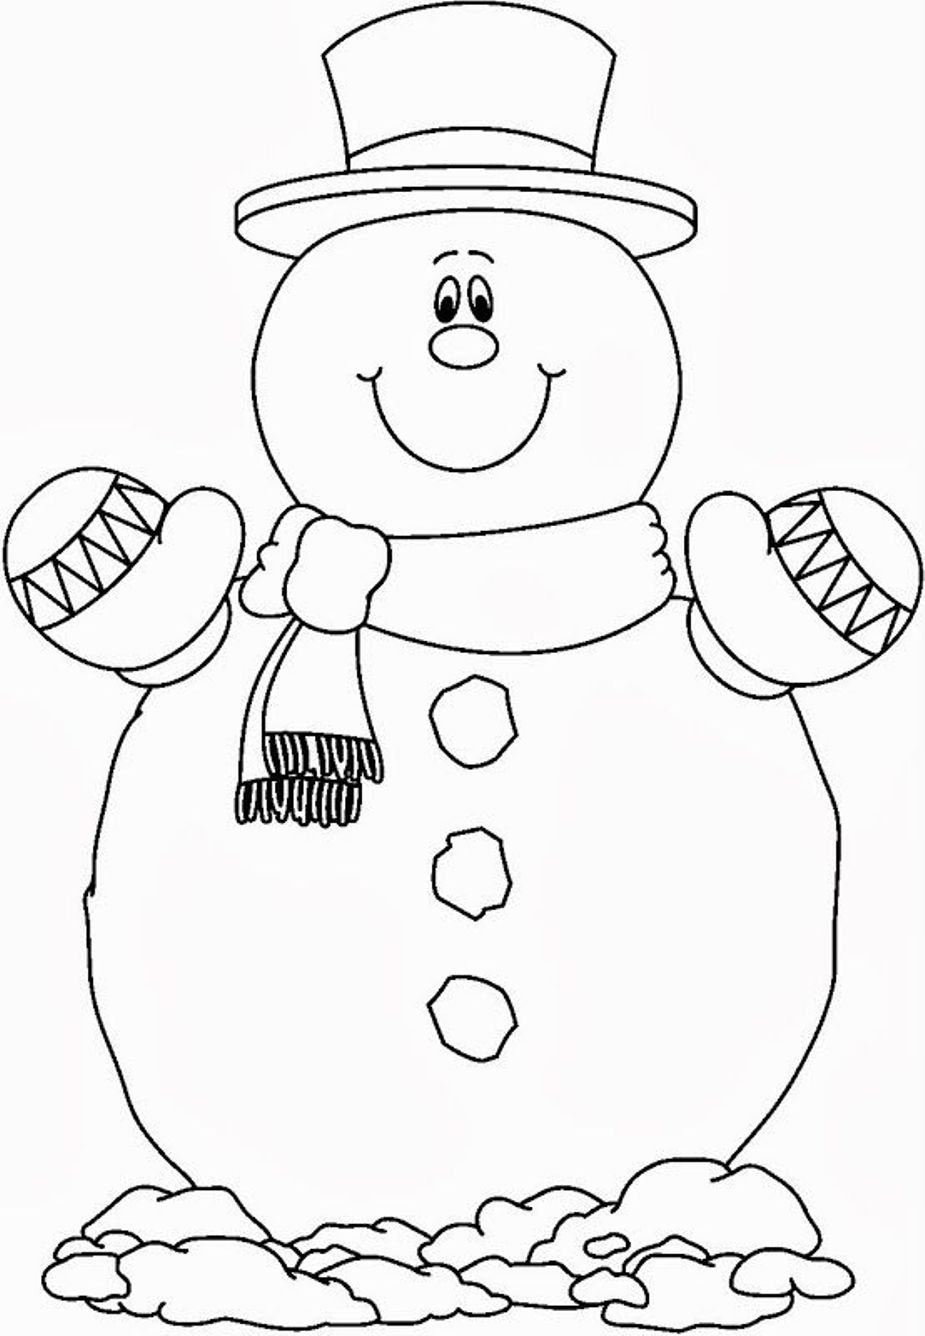 925x1336 Coloring Page Snowman Color Pages Tryonshorts Of Animals